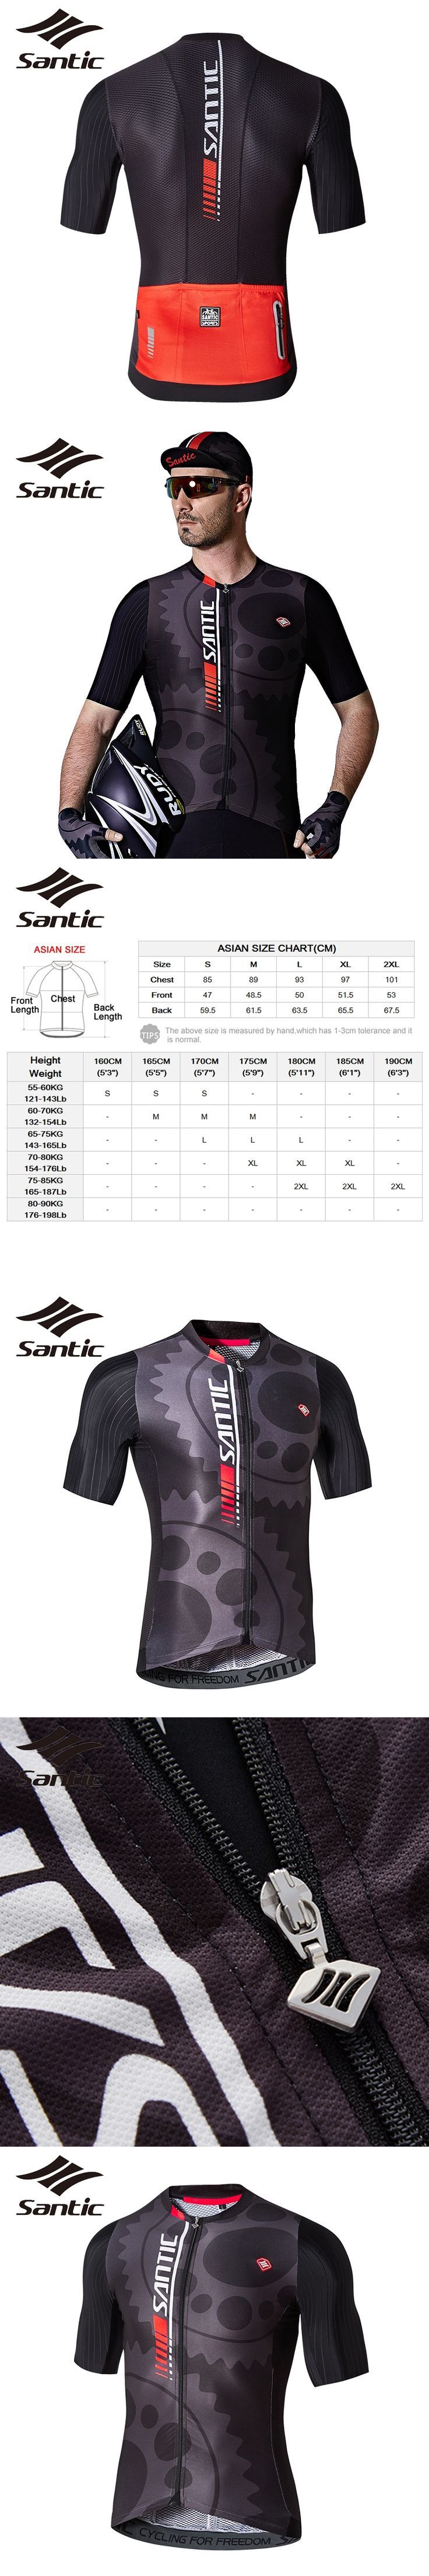 Santic Cycling Jersey Men's Designer Road Bike Windbreaker Maillot Ciclismo Short Sleeve Motocross Jersey Sky Bike Clothes 201